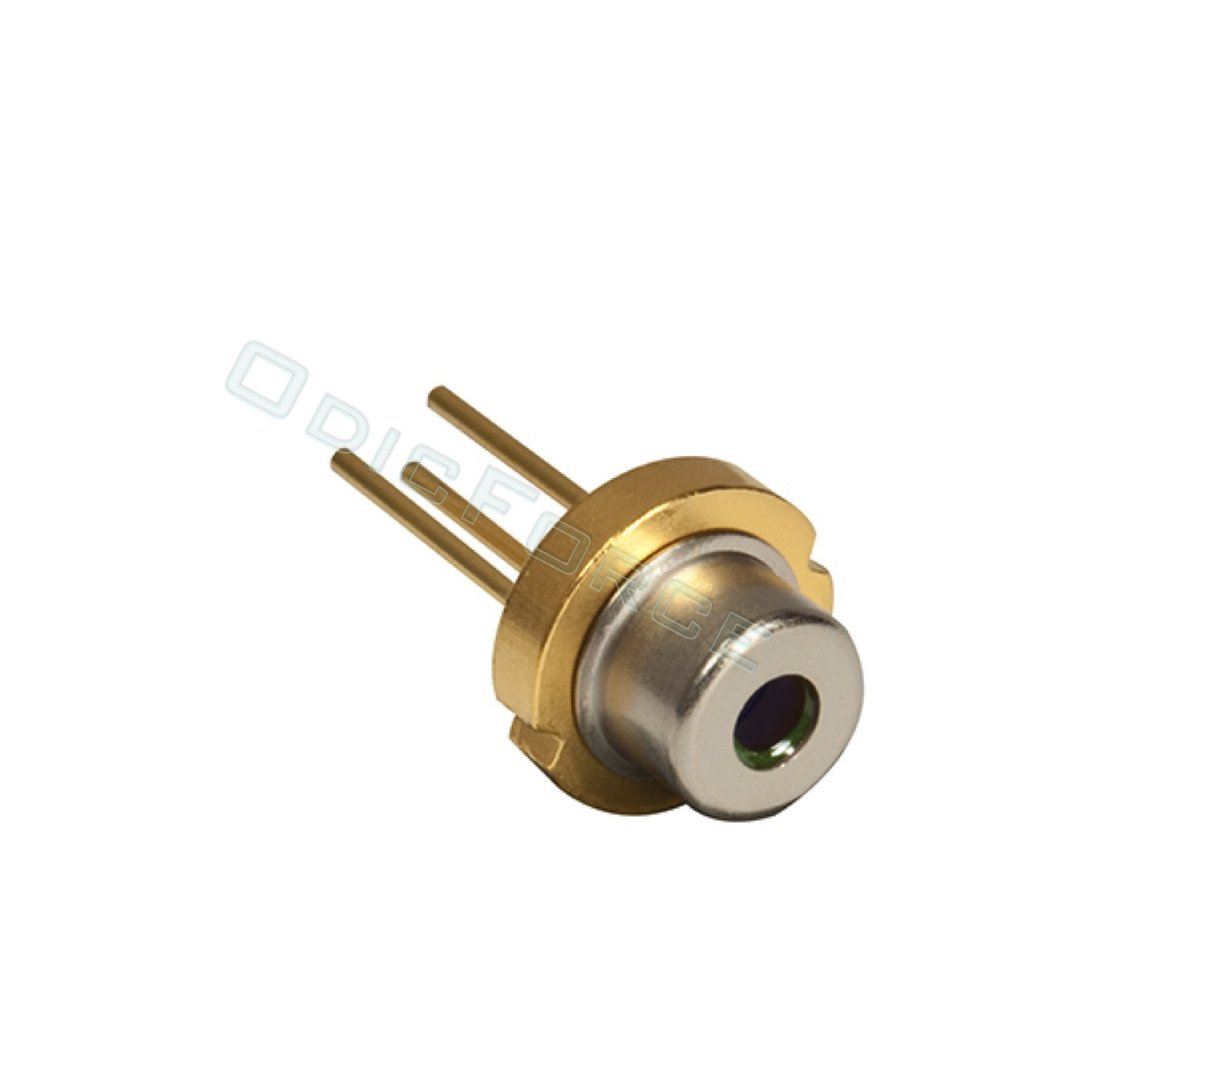 Osram 1.6W 450nm Blue Laser Diode (TO56 5.6mm) PL TB450B